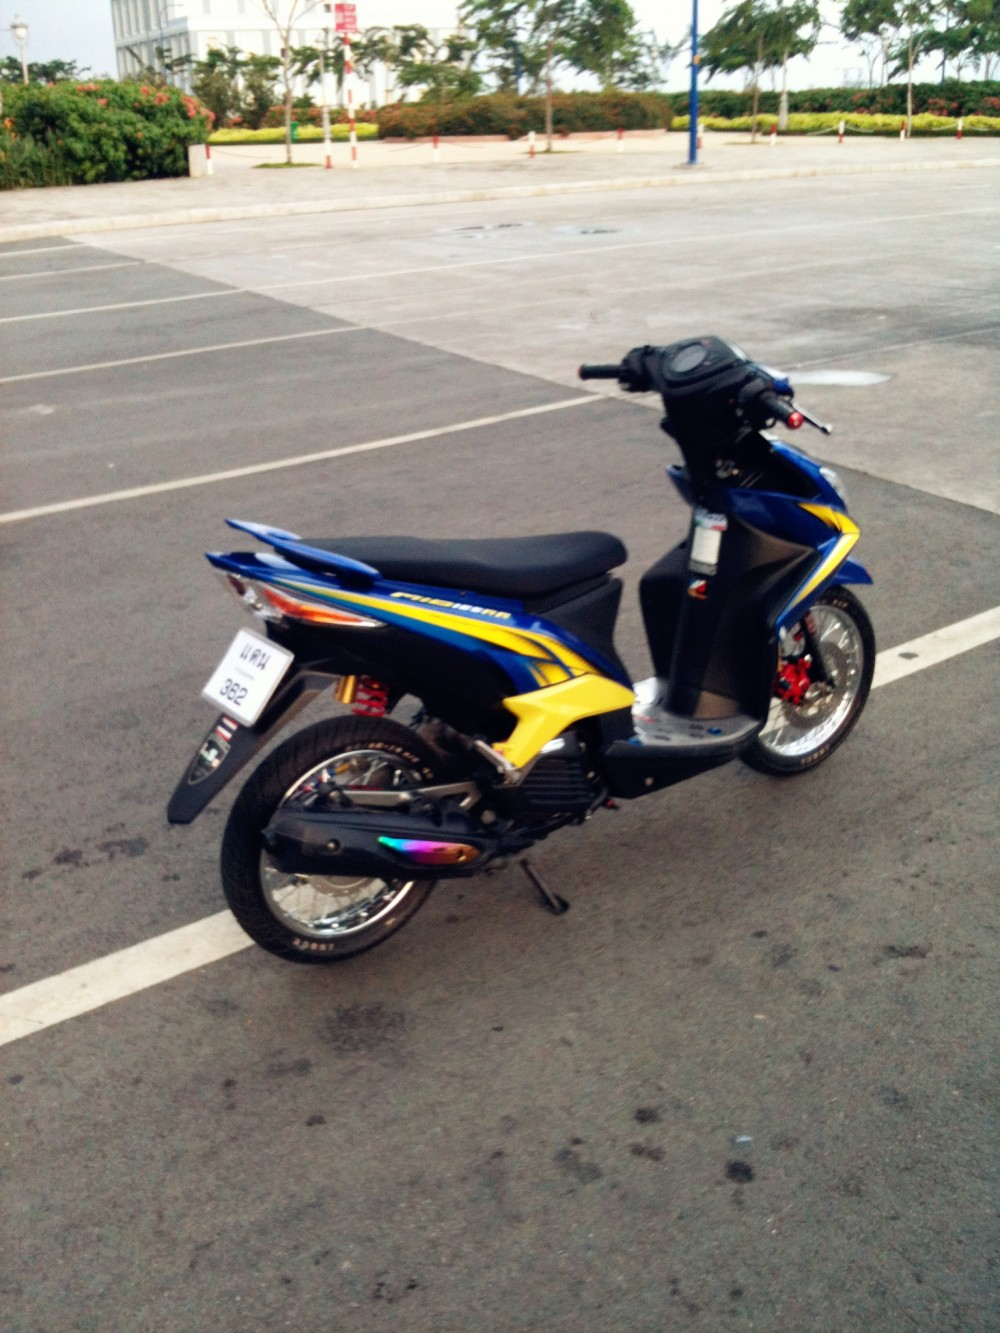 Mio 125i style drag Thai nhe nhang ma chat - 2